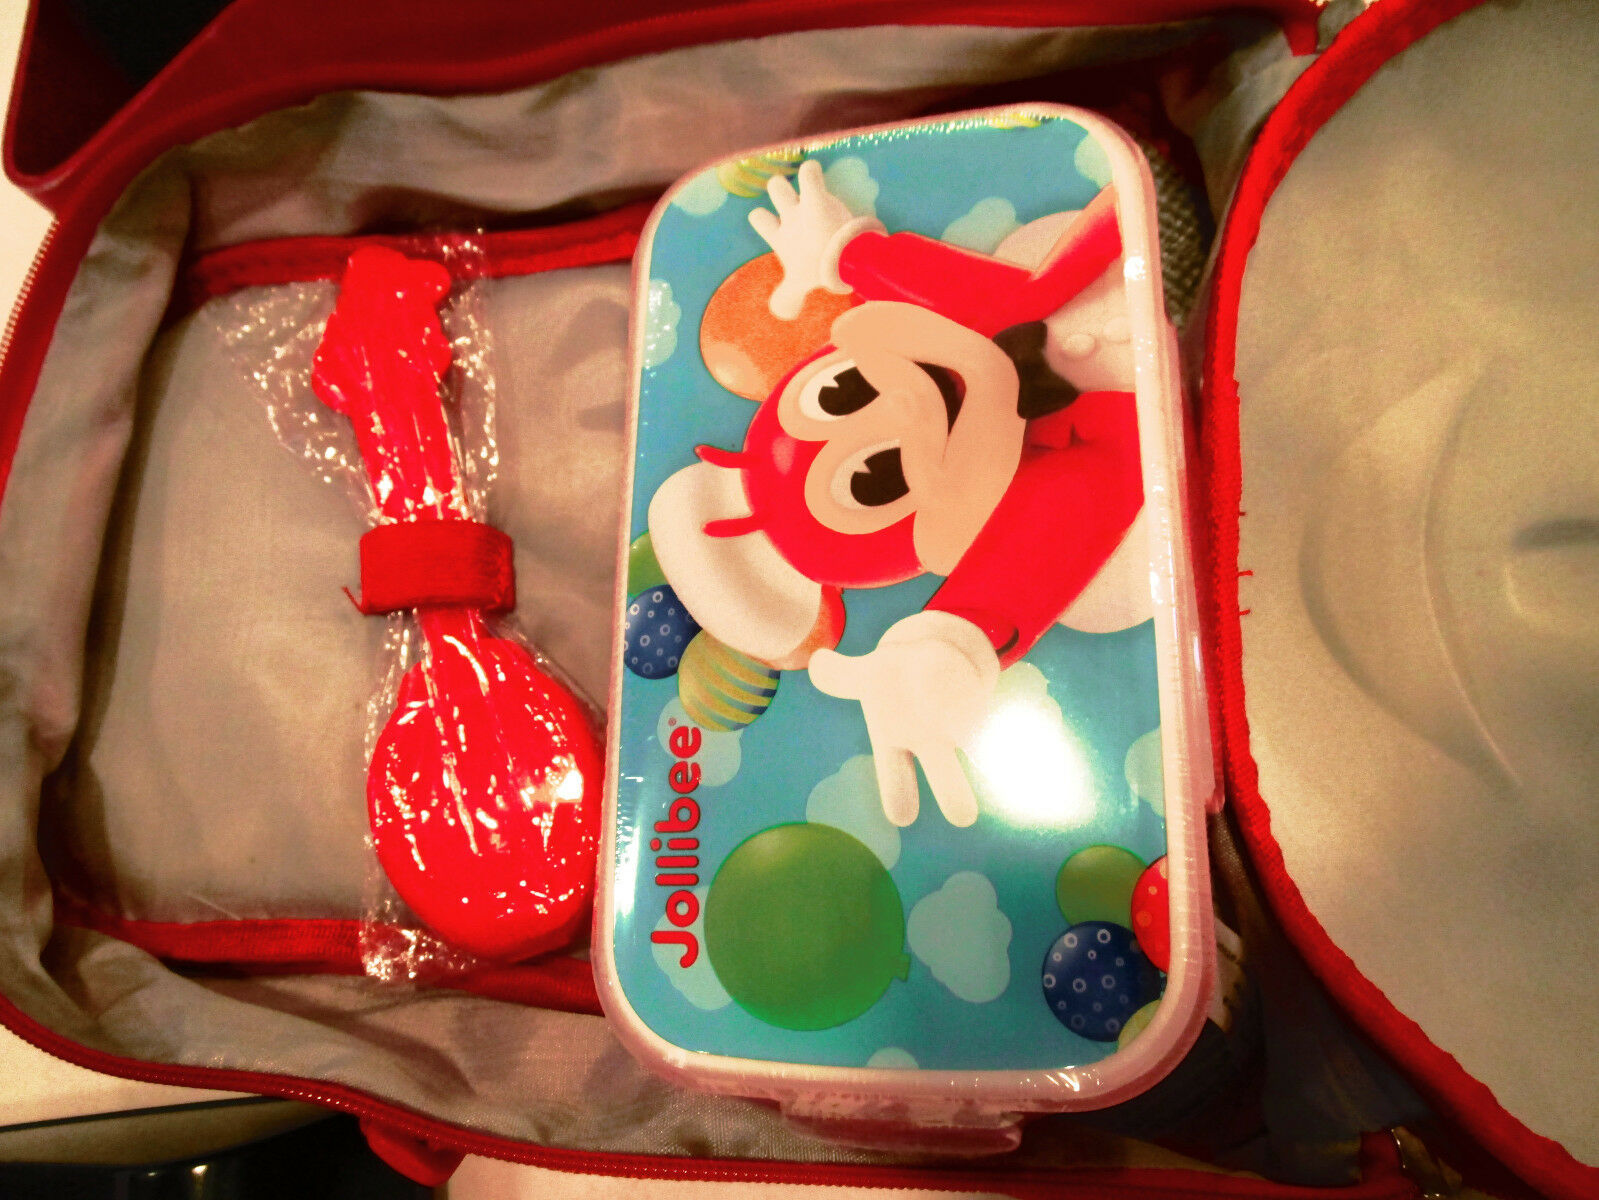 Philippines new Jollibee Lunch Bag with plastic container spoon and fork sealed